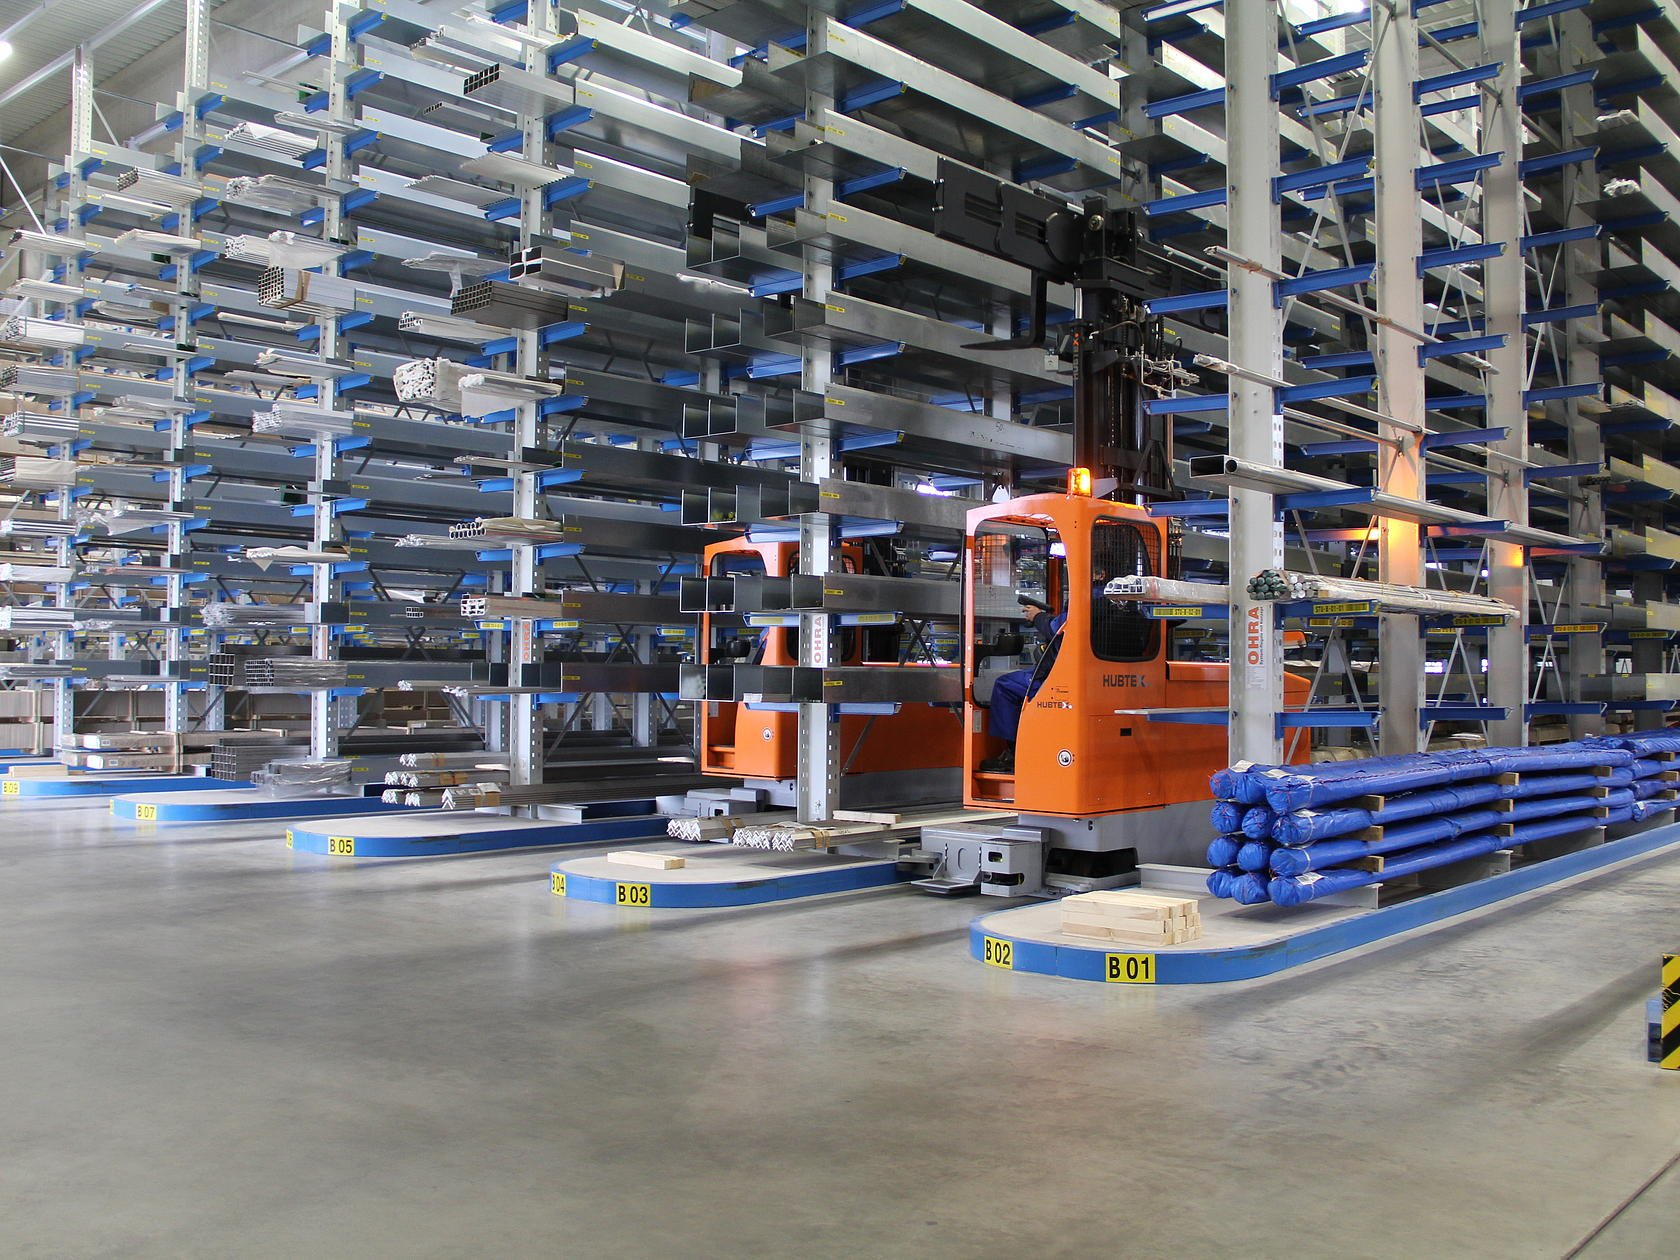 Multidirectional sideloader in narrow aisle in the metal industry